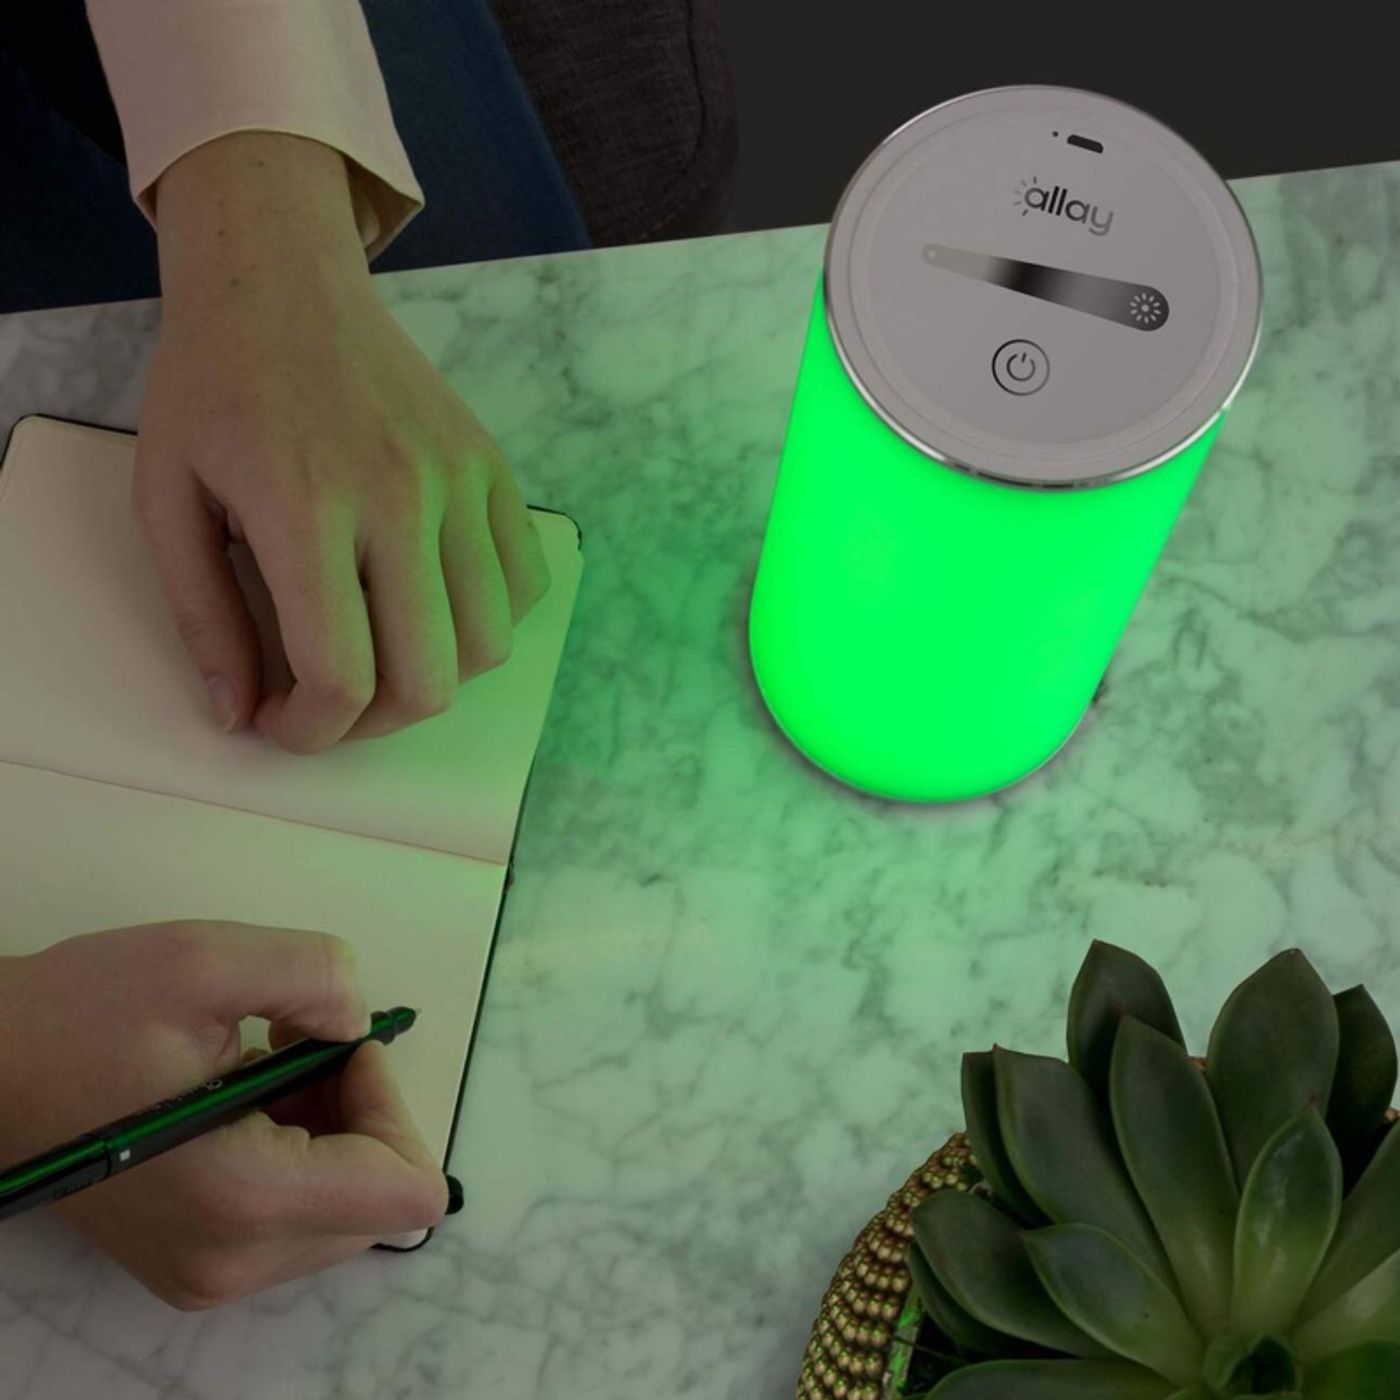 Quality Sleep and Migraine Relief: The Allay Lamp